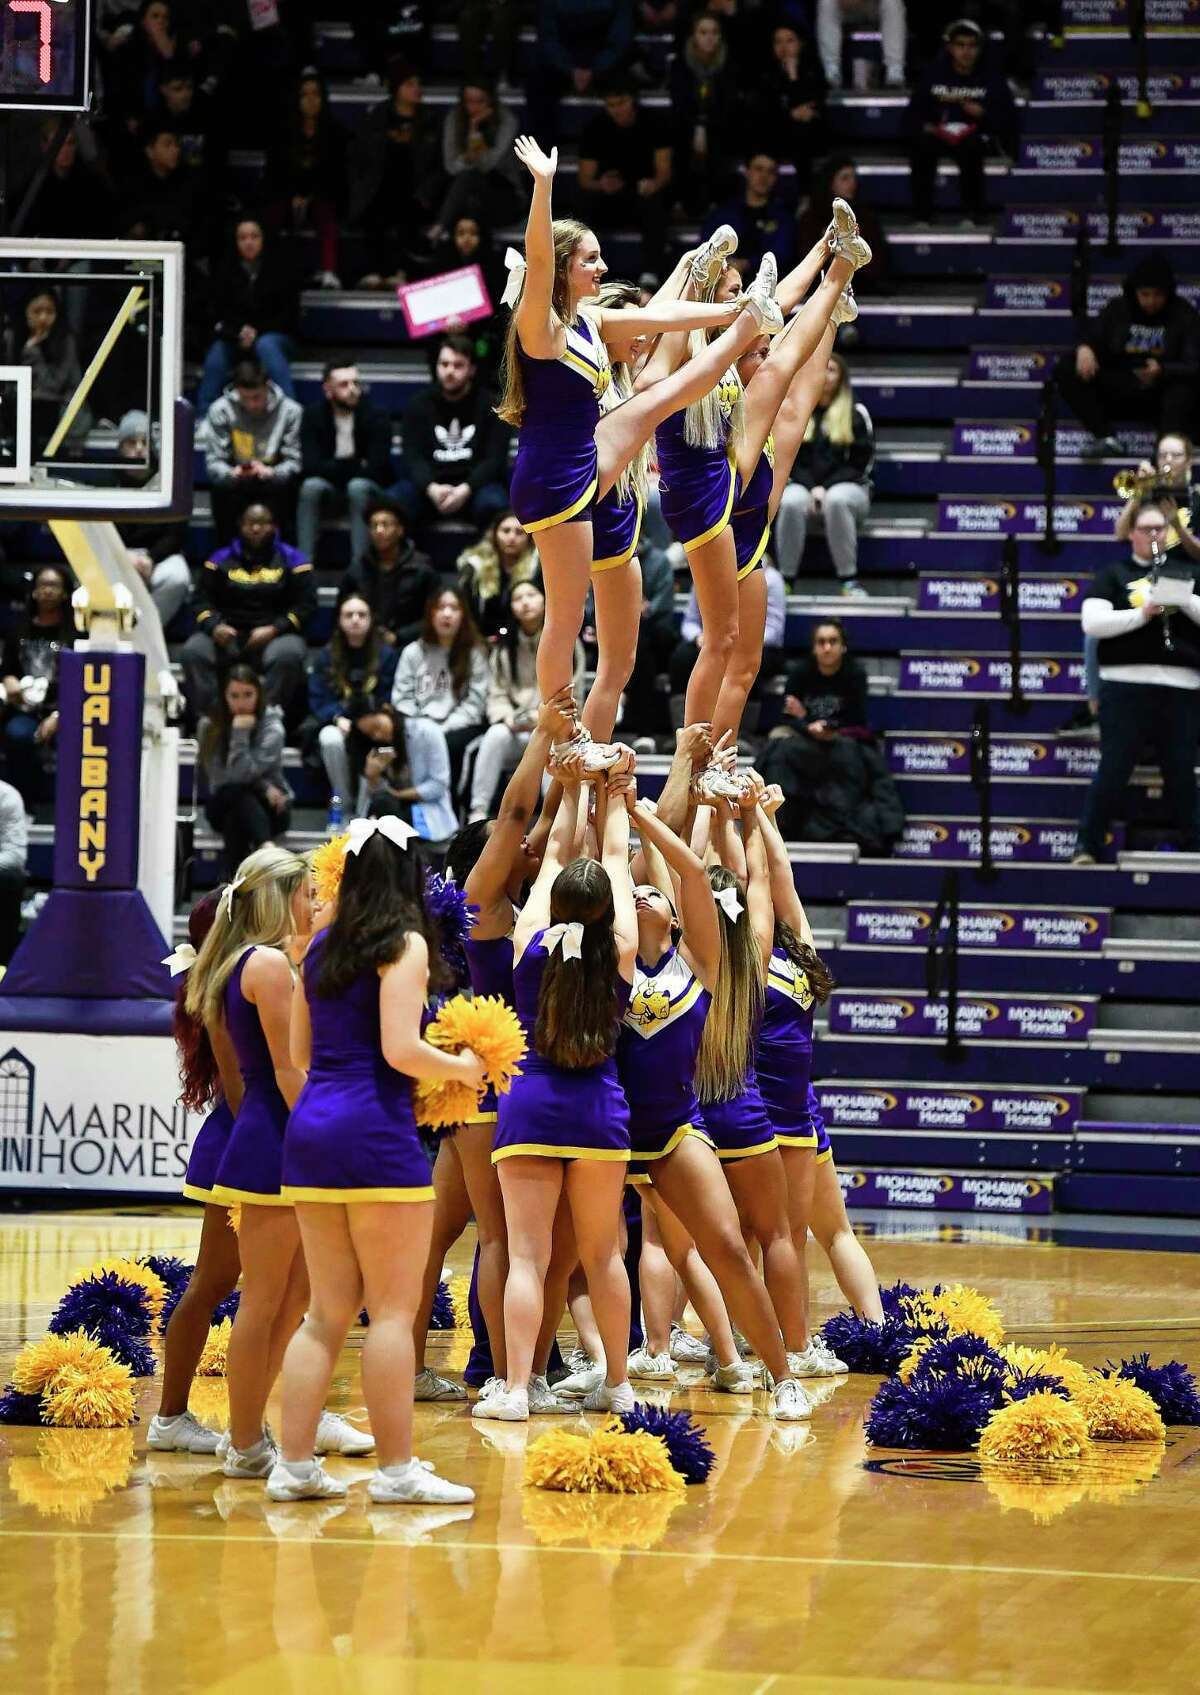 Members of the University at Albany cheer team perform during the first half of an NCAA basketball game against Hartford Saturday, Jan. 25, 2020, in Albany, N.Y. (Hans Pennink / Special to the Times Union) ORG XMIT: 012620_uamen_HP111